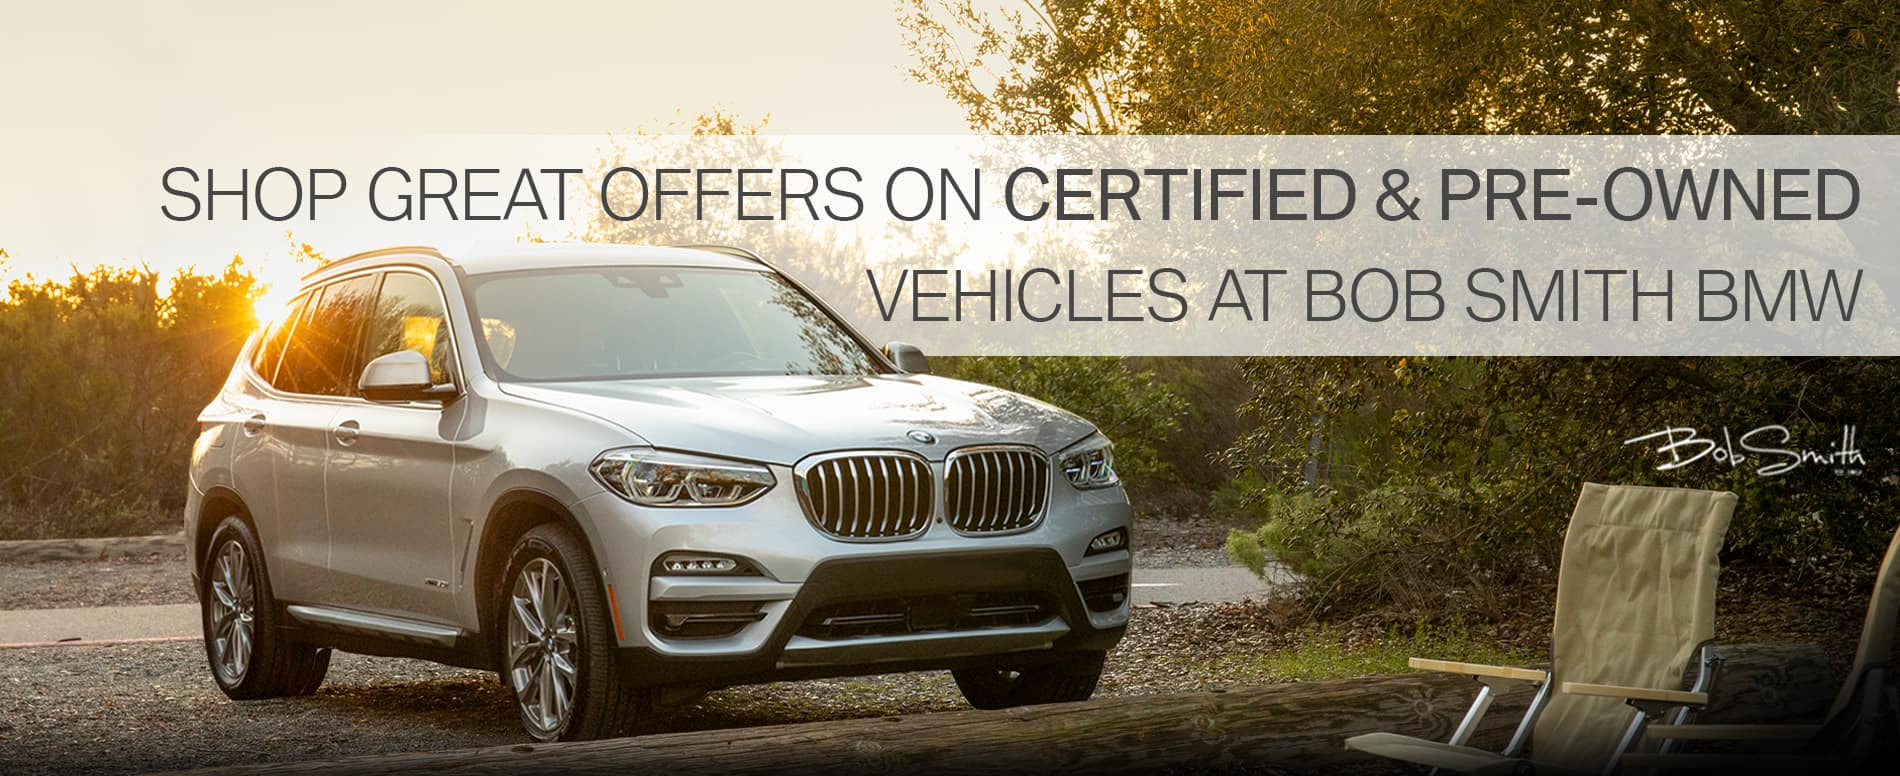 Certified Pre Owned BMW >> Bmw Certified Pre Owned Offers Bob Smith Bmw